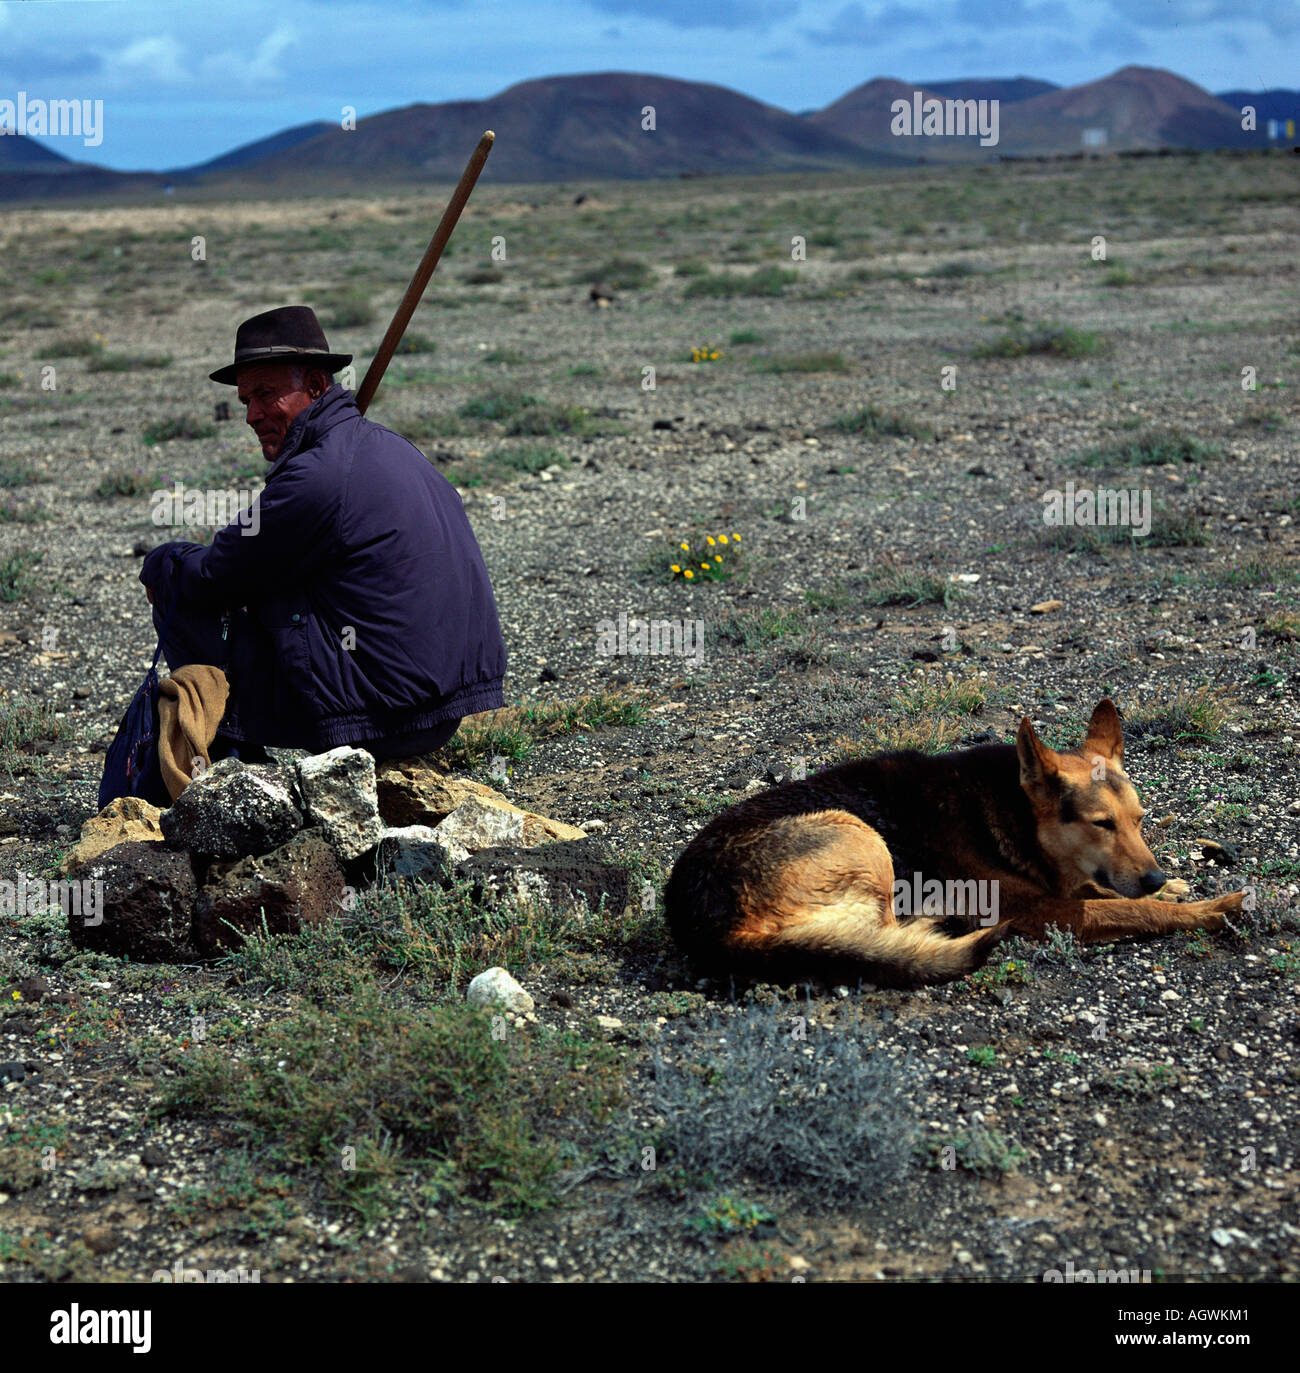 Herdsman with dog / Hirte mit Hund - Stock Image